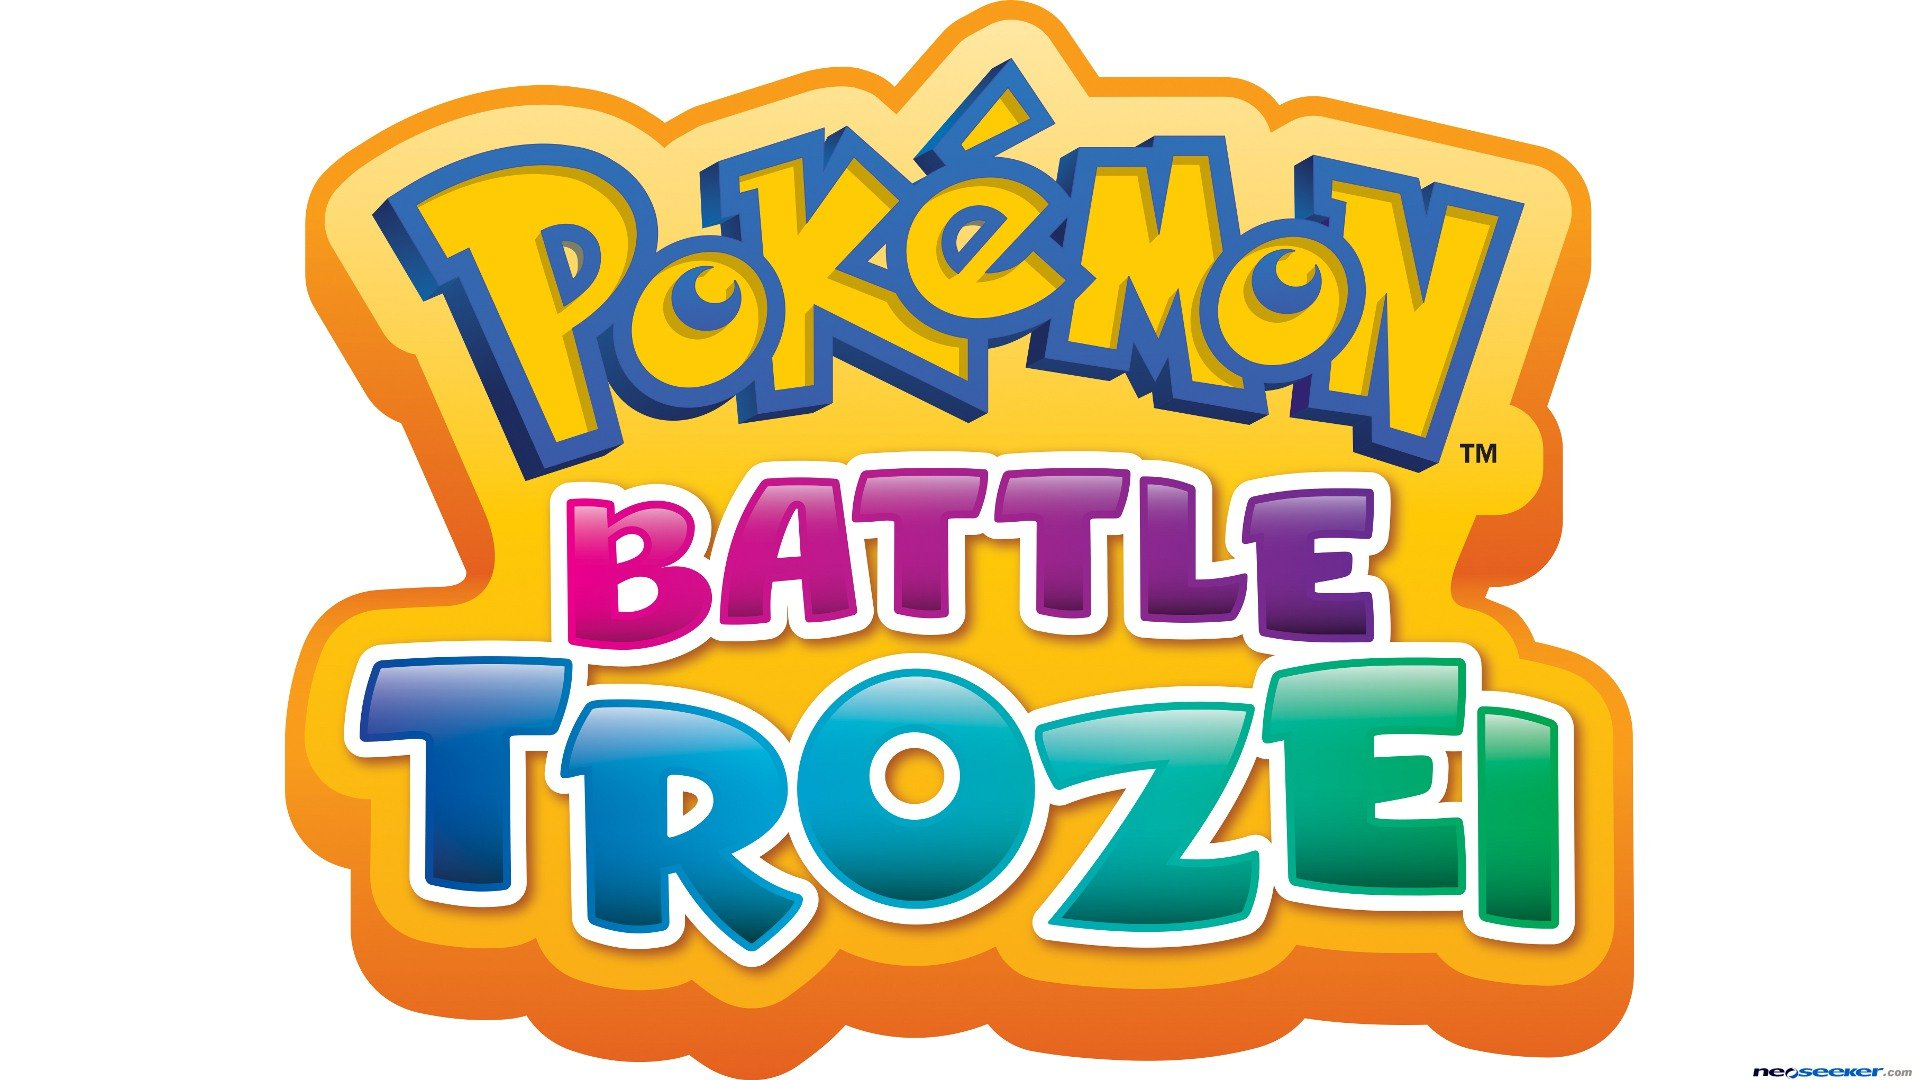 Pokémon Battle Trozei Review